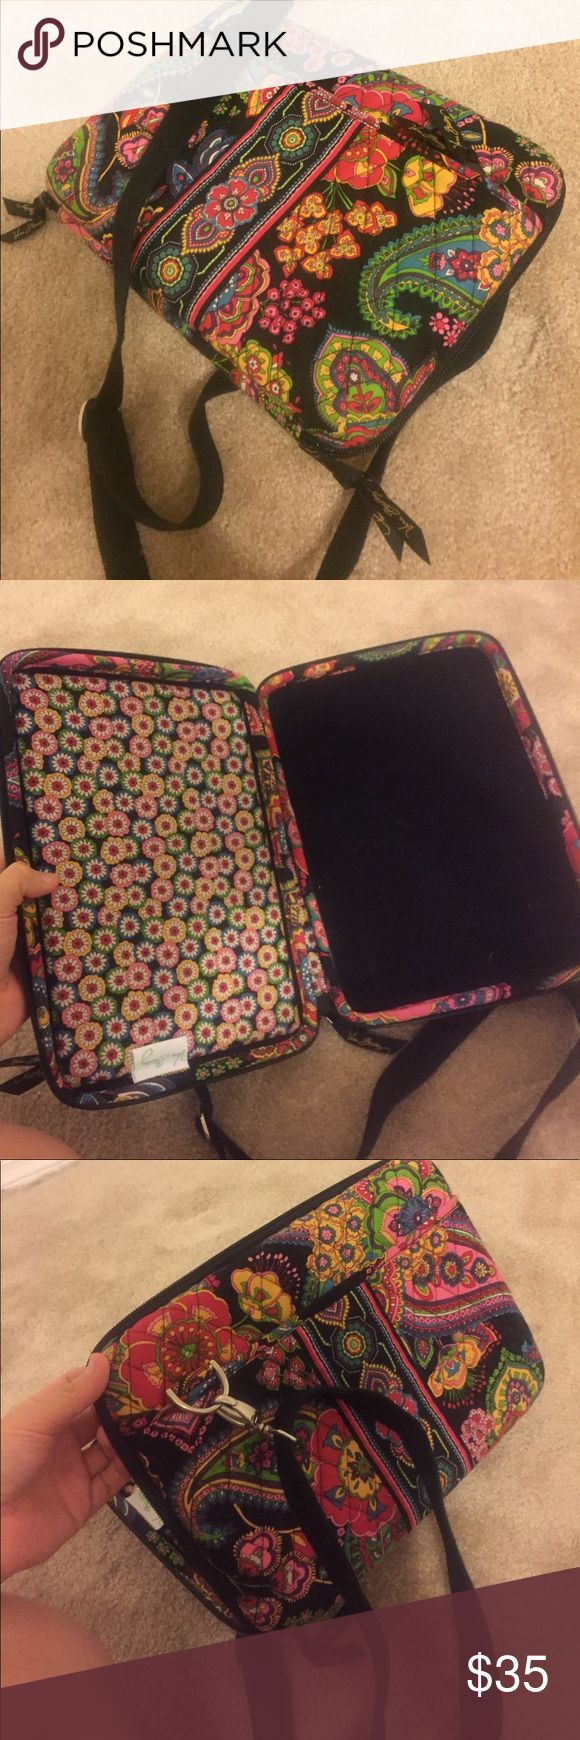 vera bradley laptop case like new, very gently used and well taken care of :)) make an offer! 💐💐 Vera Bradley Bags Laptop Bags